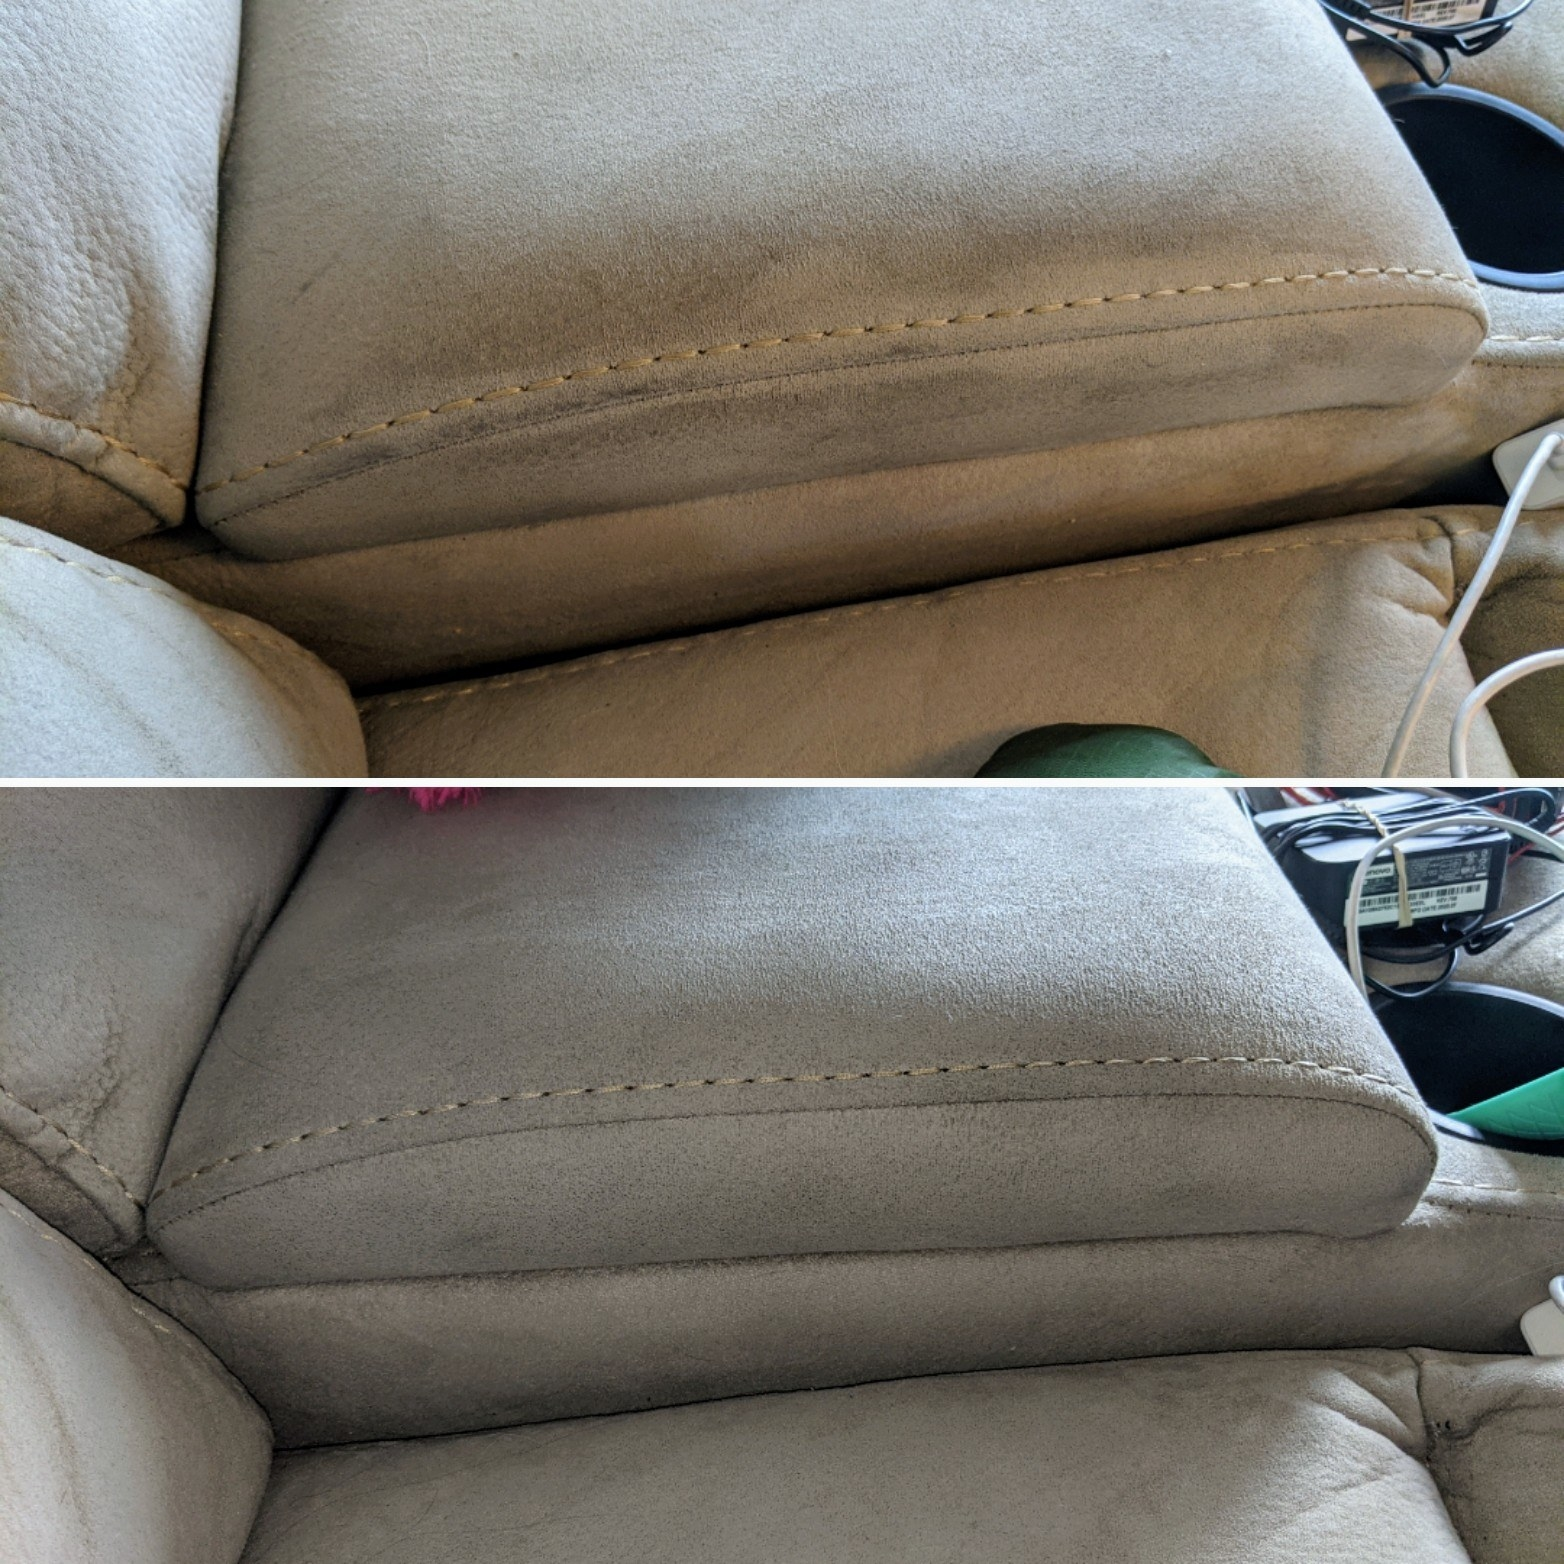 Review photo of before and after the pet carpet and upholstery cleaner